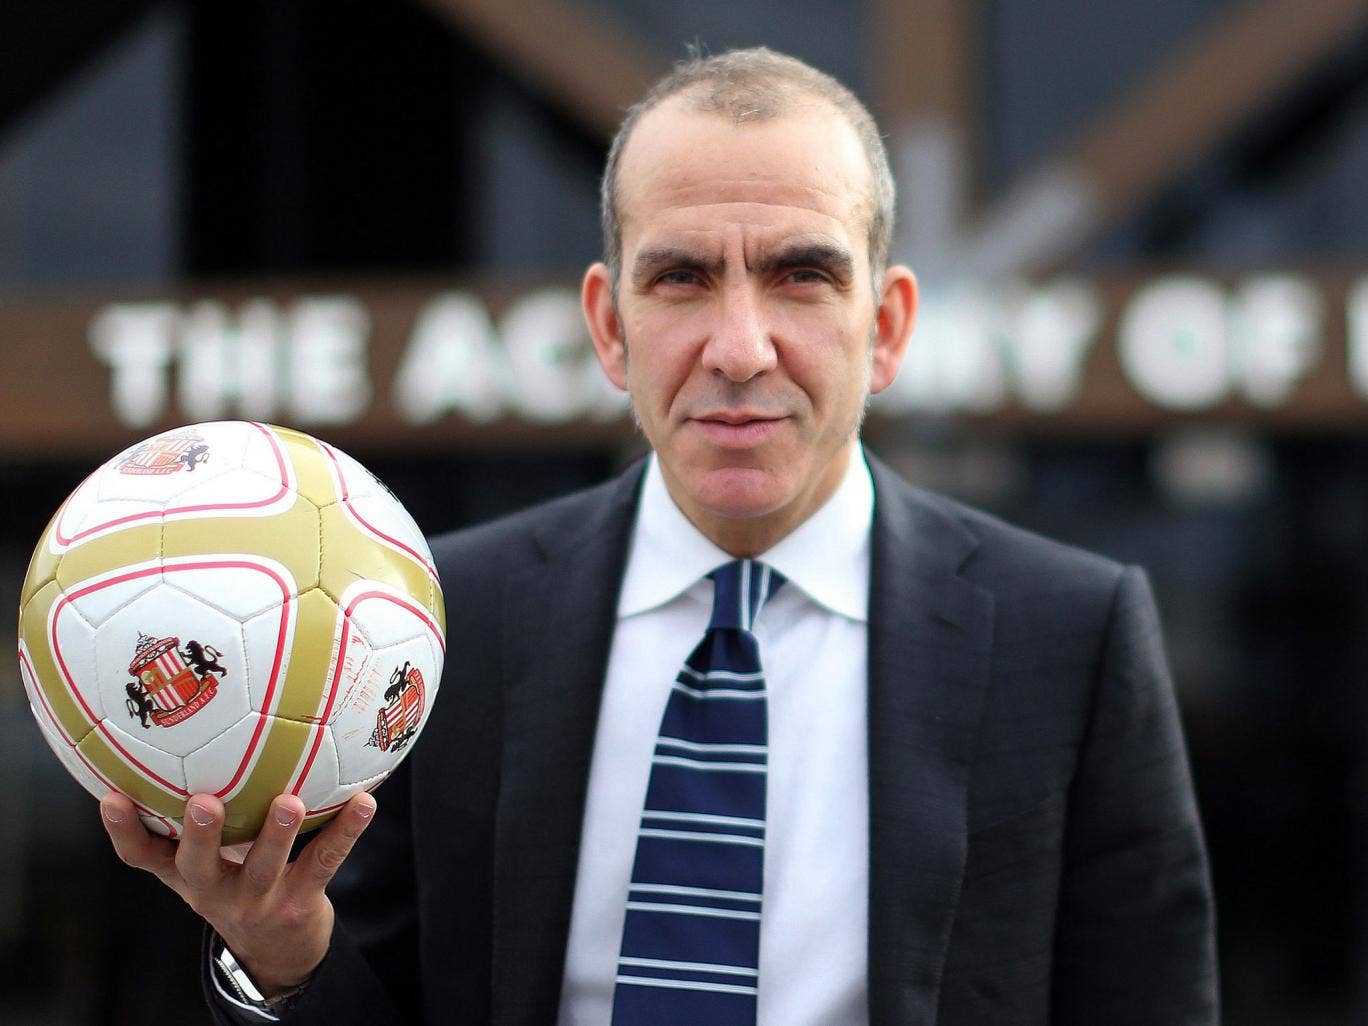 No hand grenade: but Paolo Di Canio is still holding firm to his principles